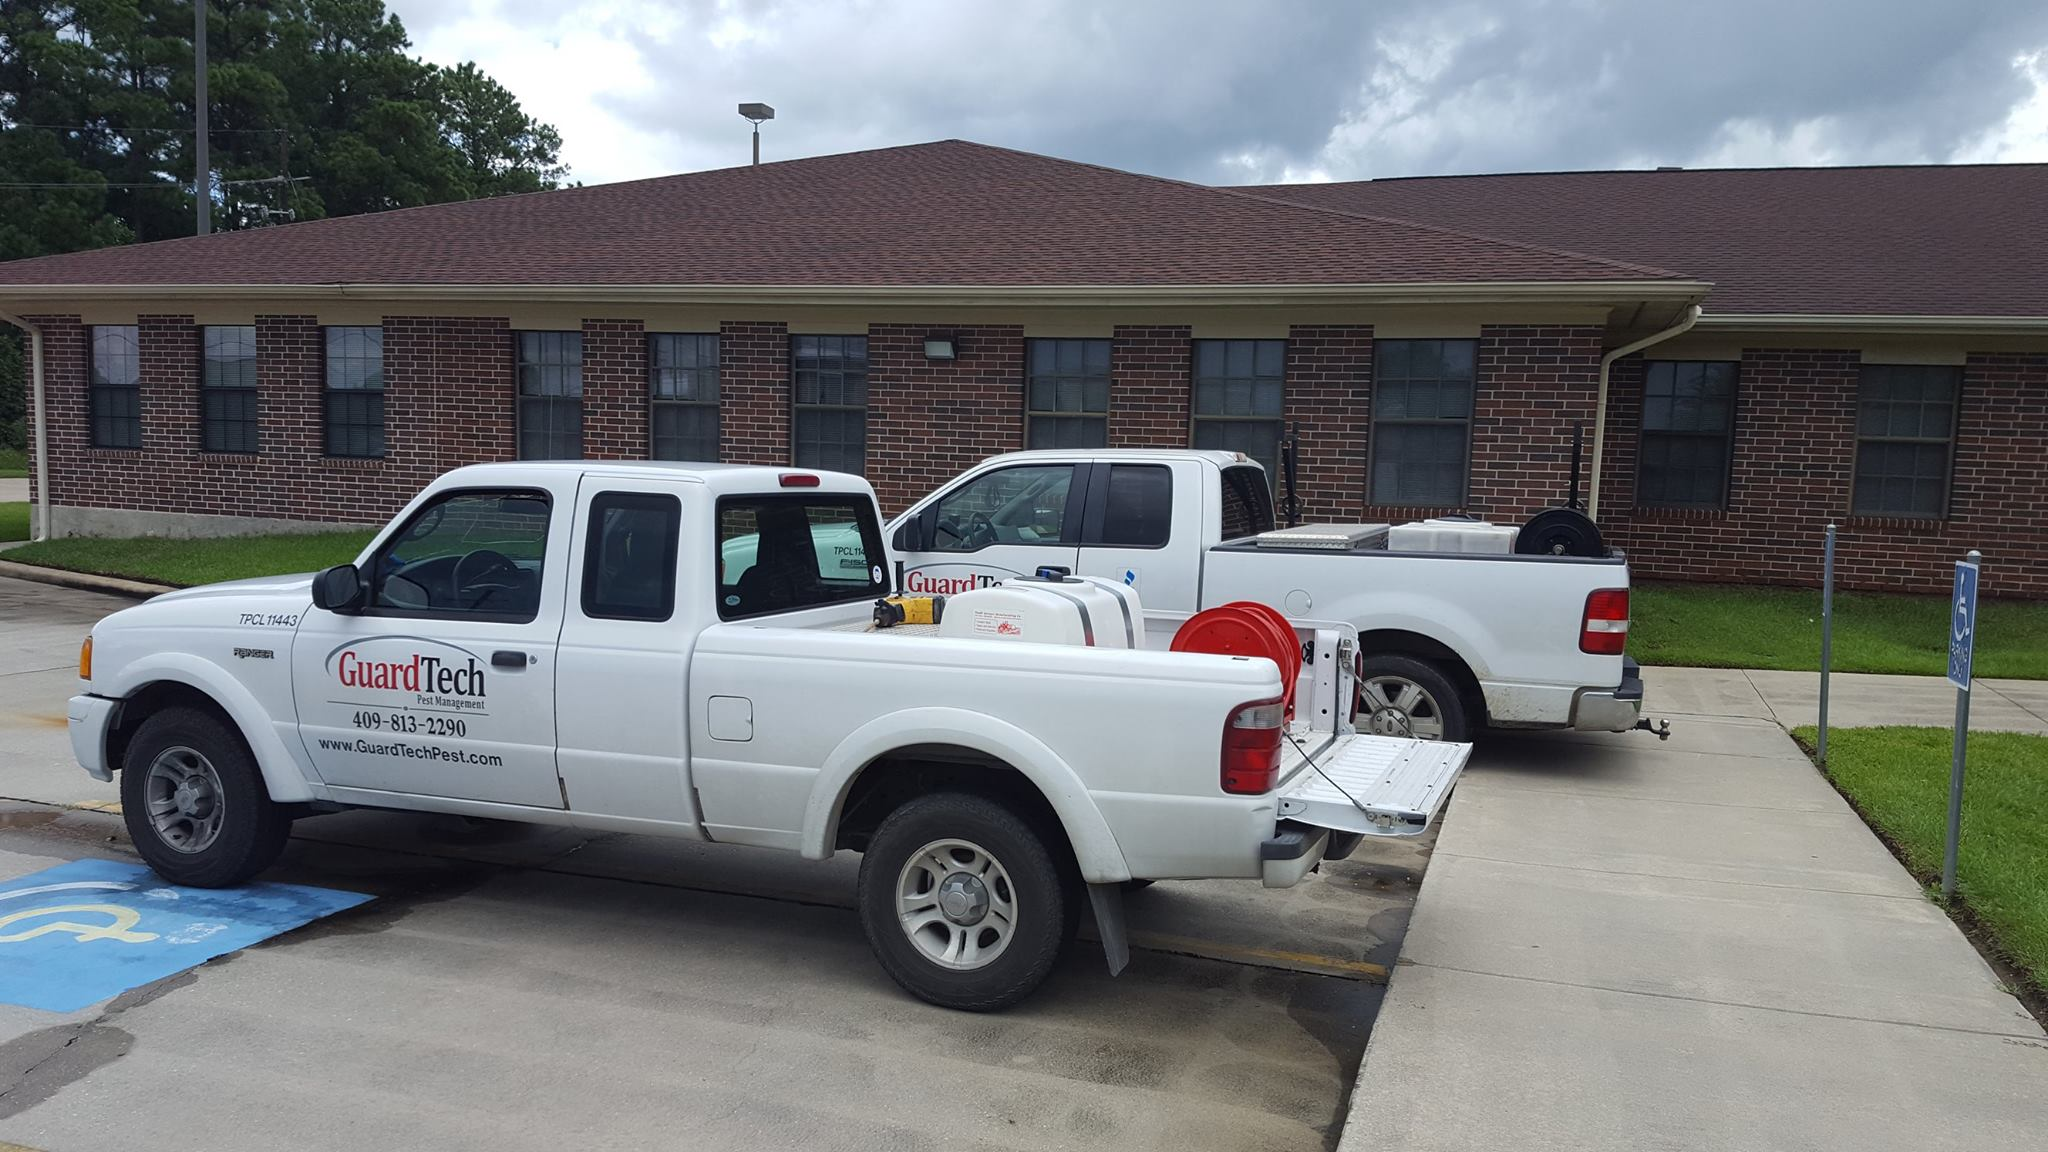 commercial pest control Beaumont TX, church pest control Southeast Texas, retail center pest control Port Arthur, Mid County pest control, exterminator Orange TX, Vidor Exterminator, SETX pest control, animal control Beaumont, animal control Port Arthur